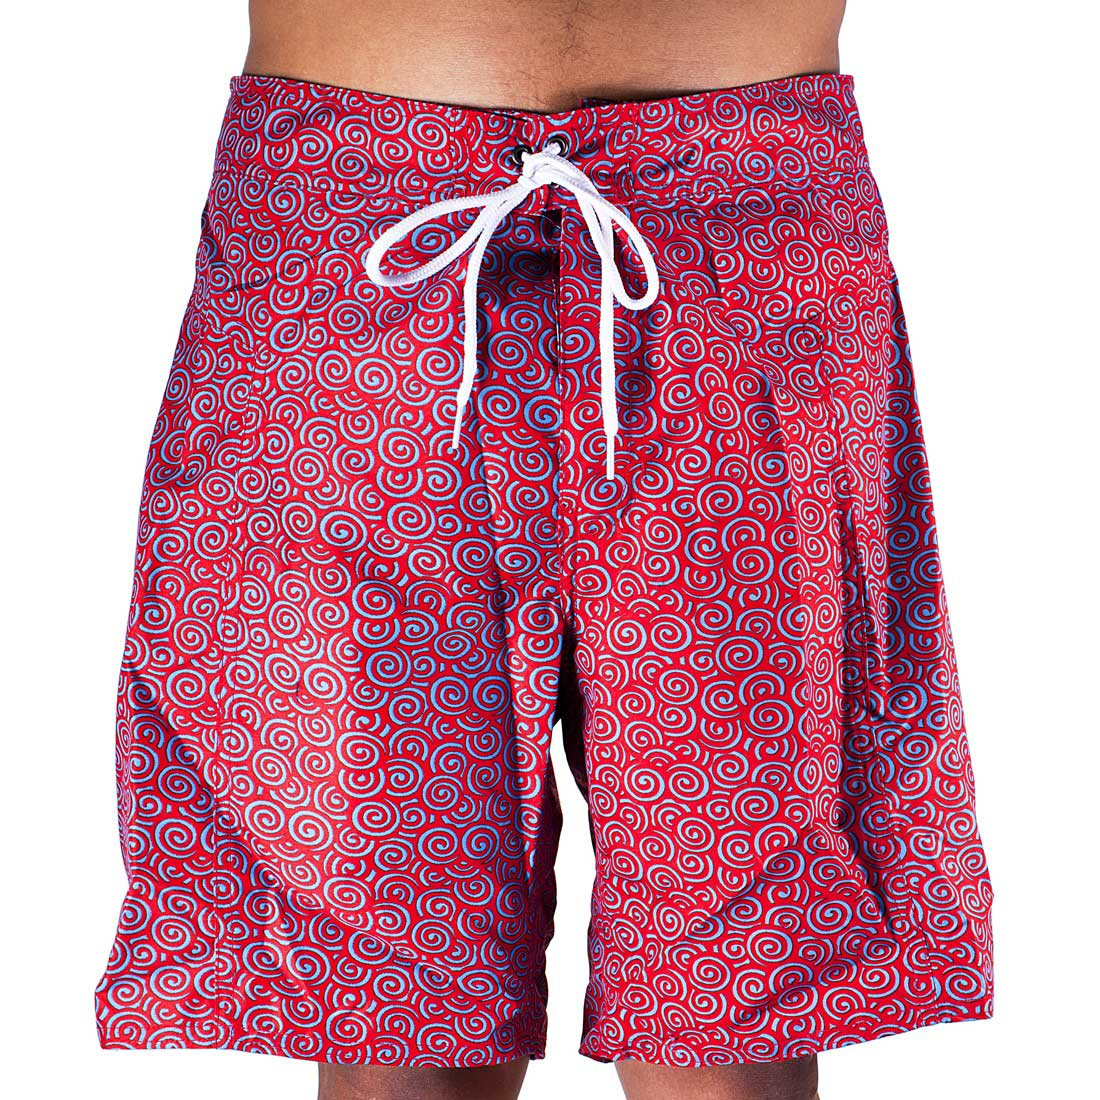 Trunks Men's Salty Board Shorts – Poppy Swirls